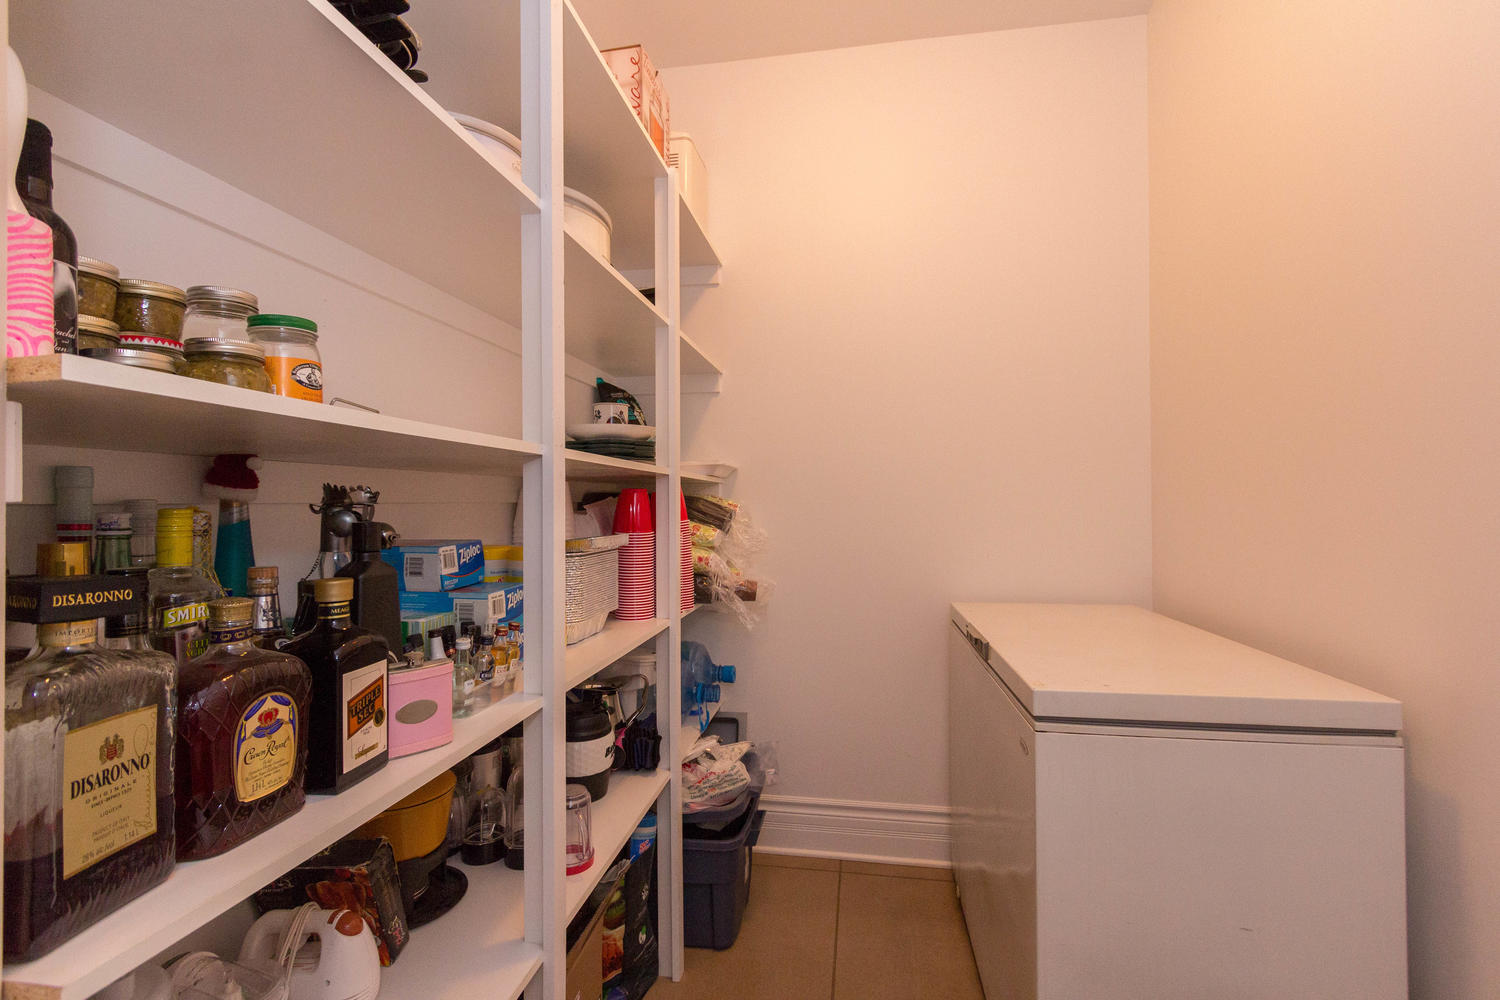 IF the kitchen didn't have enough storage for you, there is a large pantry right off the kitchen.